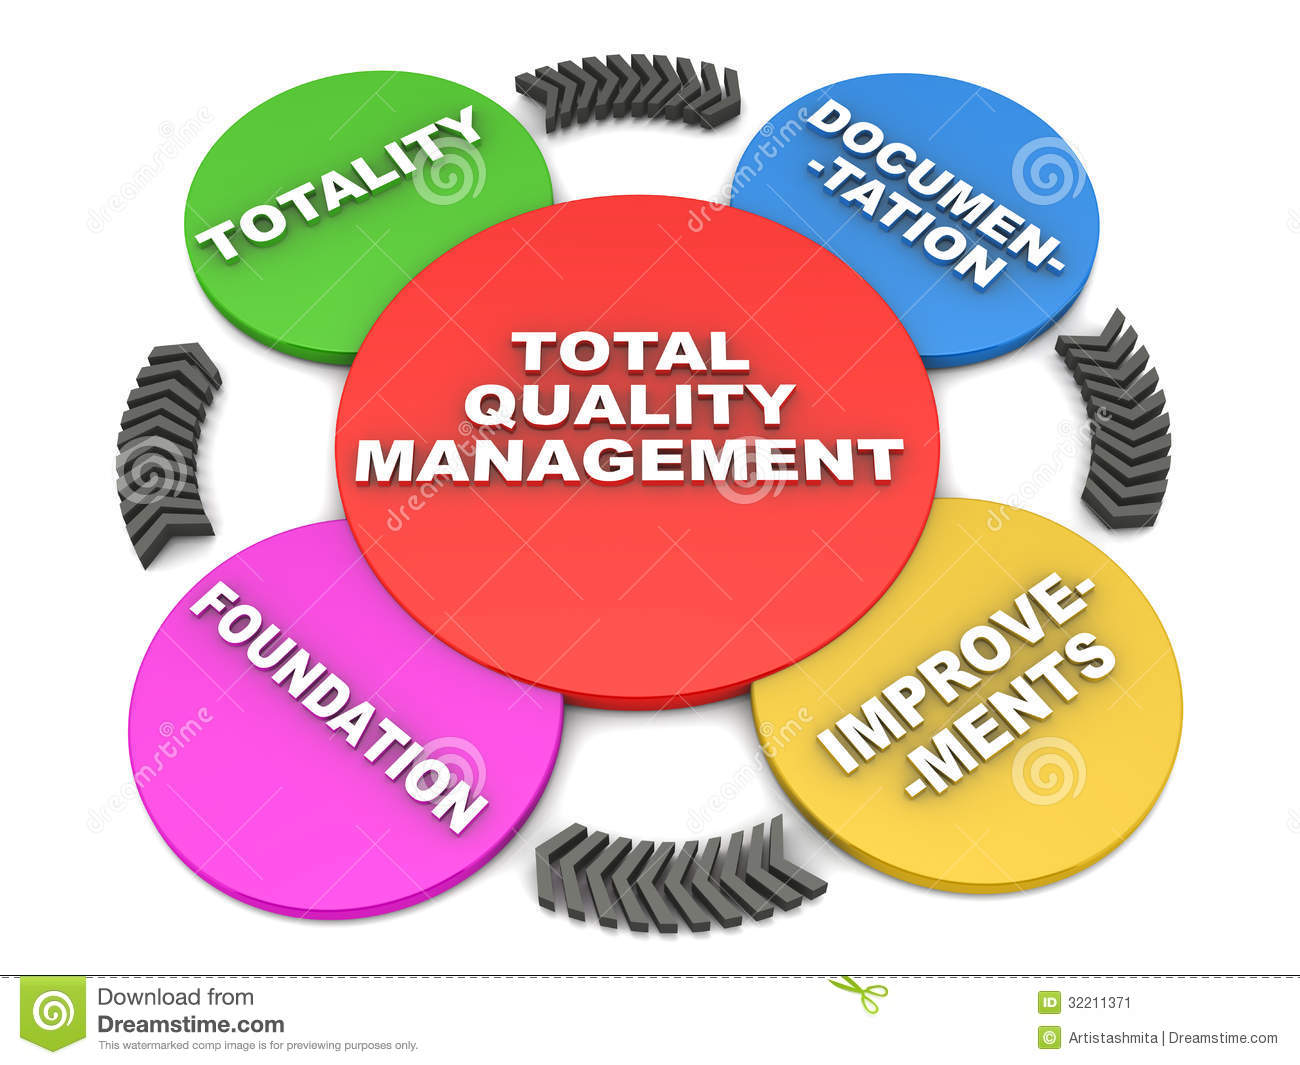 total quality management tqm doesnt work essay Find paragraphs, long and short essays on 'total quality management' especially written for school and college students essay on total quality management essay contents: services and the culture in which they work essay # 2.